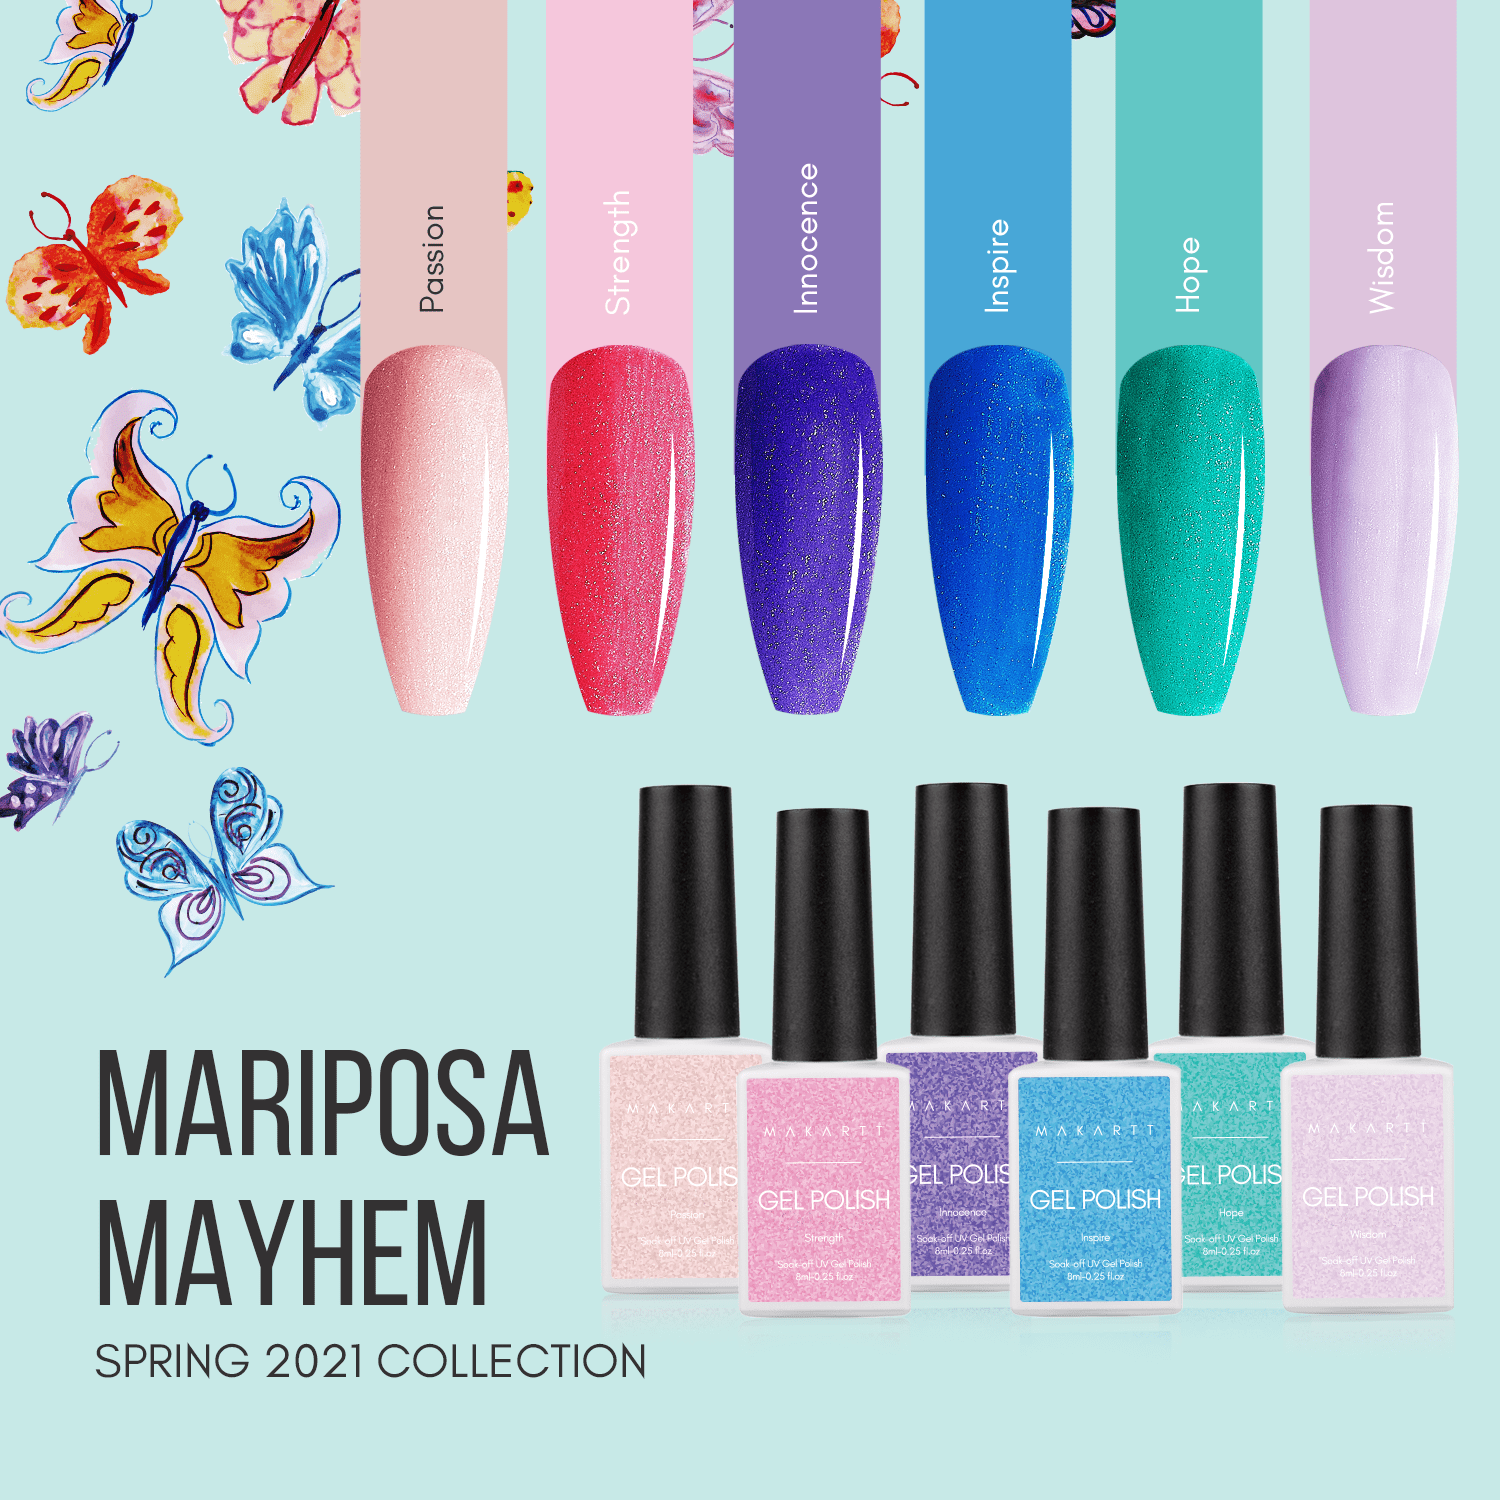 Mariposa Mayhem Gel Polish Set